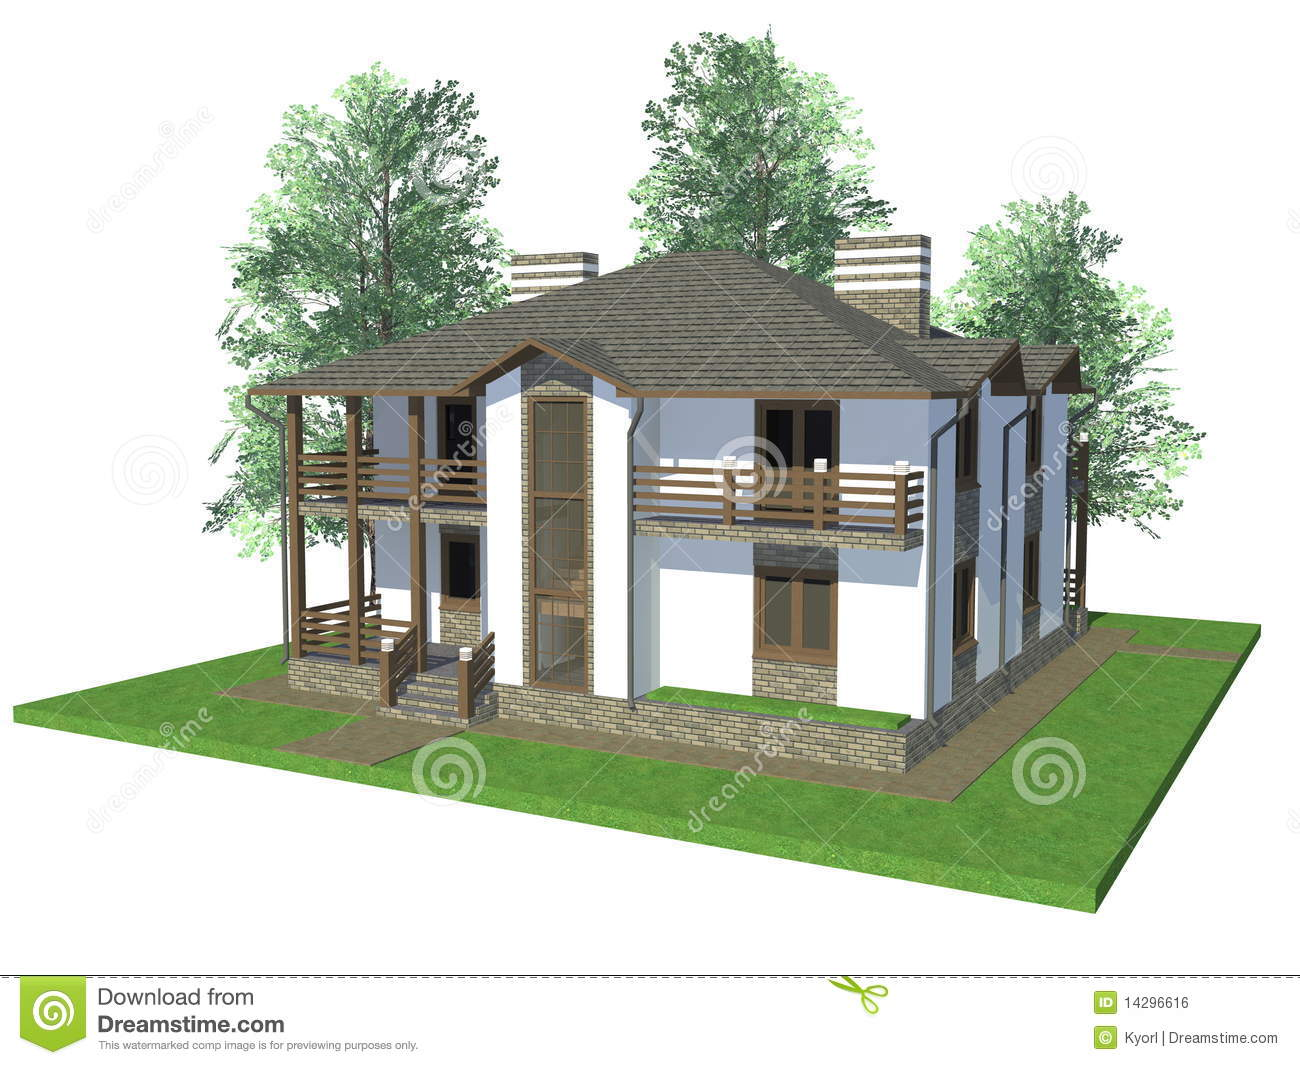 3d Model Home Royalty Free Stock Image Image 14296616